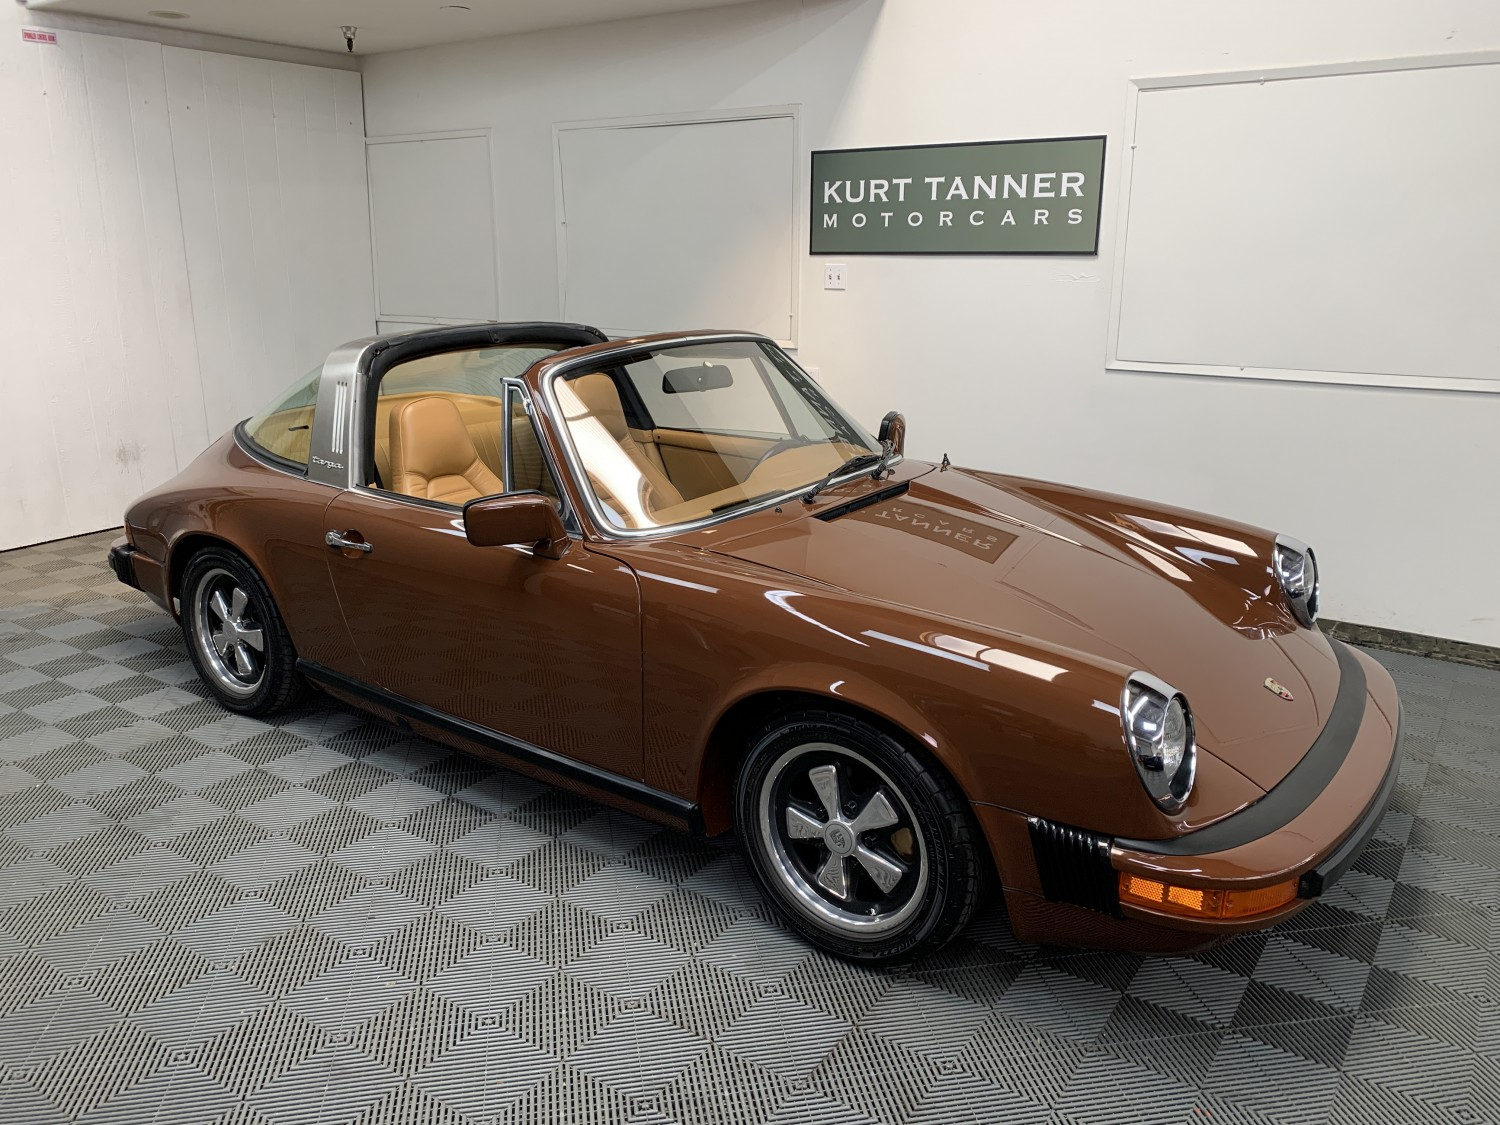 1976 PORSCHE 911 S TARGA. BITTER CHOCOLATE WITH BEIGE LEATHER TRIM, BLACK TARGA TOP. 2.7 LITERS, 5-SPEED, FUCHS ALLOYS, FITTED AIR CONDITIONING. SUPERB, QUALITY, TOTAL RESTORATION COMPLETED ONLY 5 YEARS AGO WITH ONLY 1331 MILES SINCE!